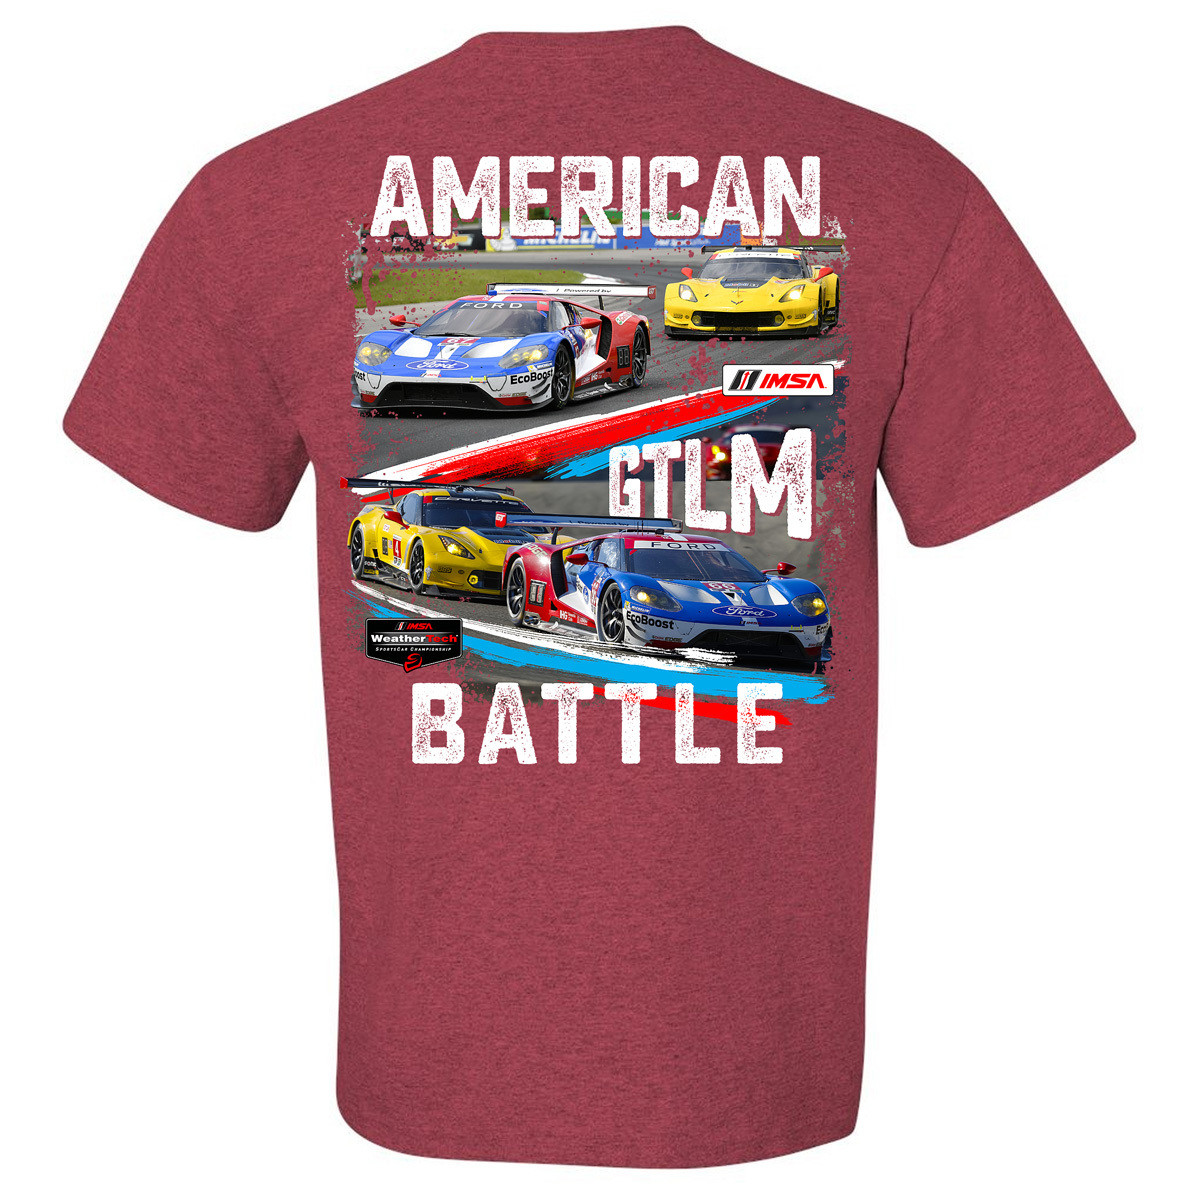 American Battle - Ford vs. Chevy Tee - Heather Cardinal